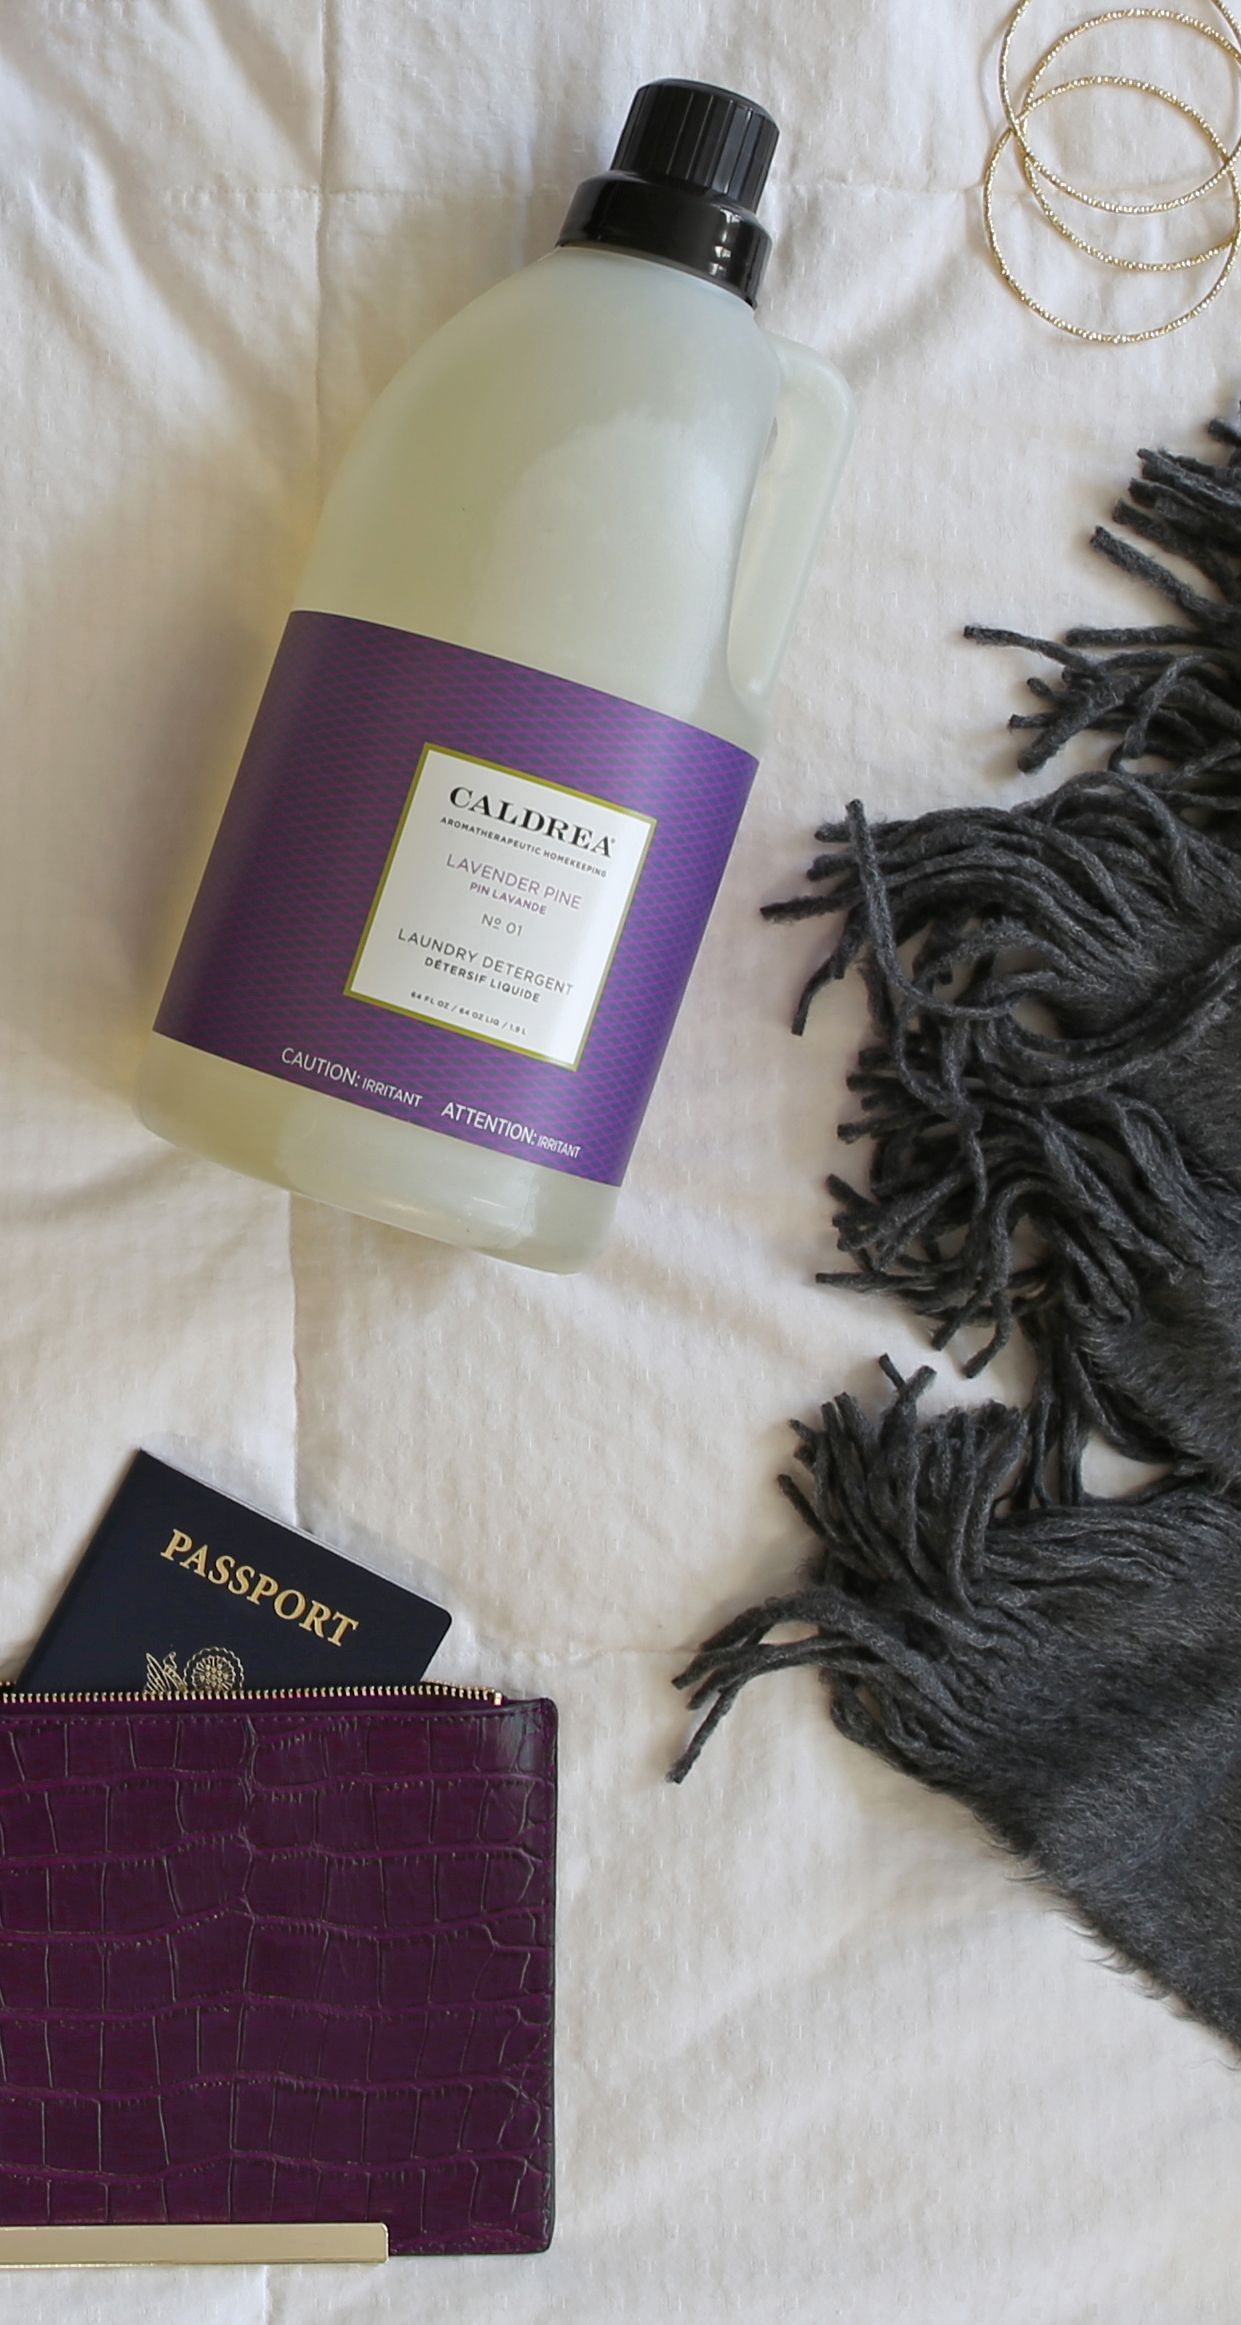 Bring A Sense Of Tranquility To Your Wardrobe With The Serene Scent Of Our Lavender Pine Laundry Detergent